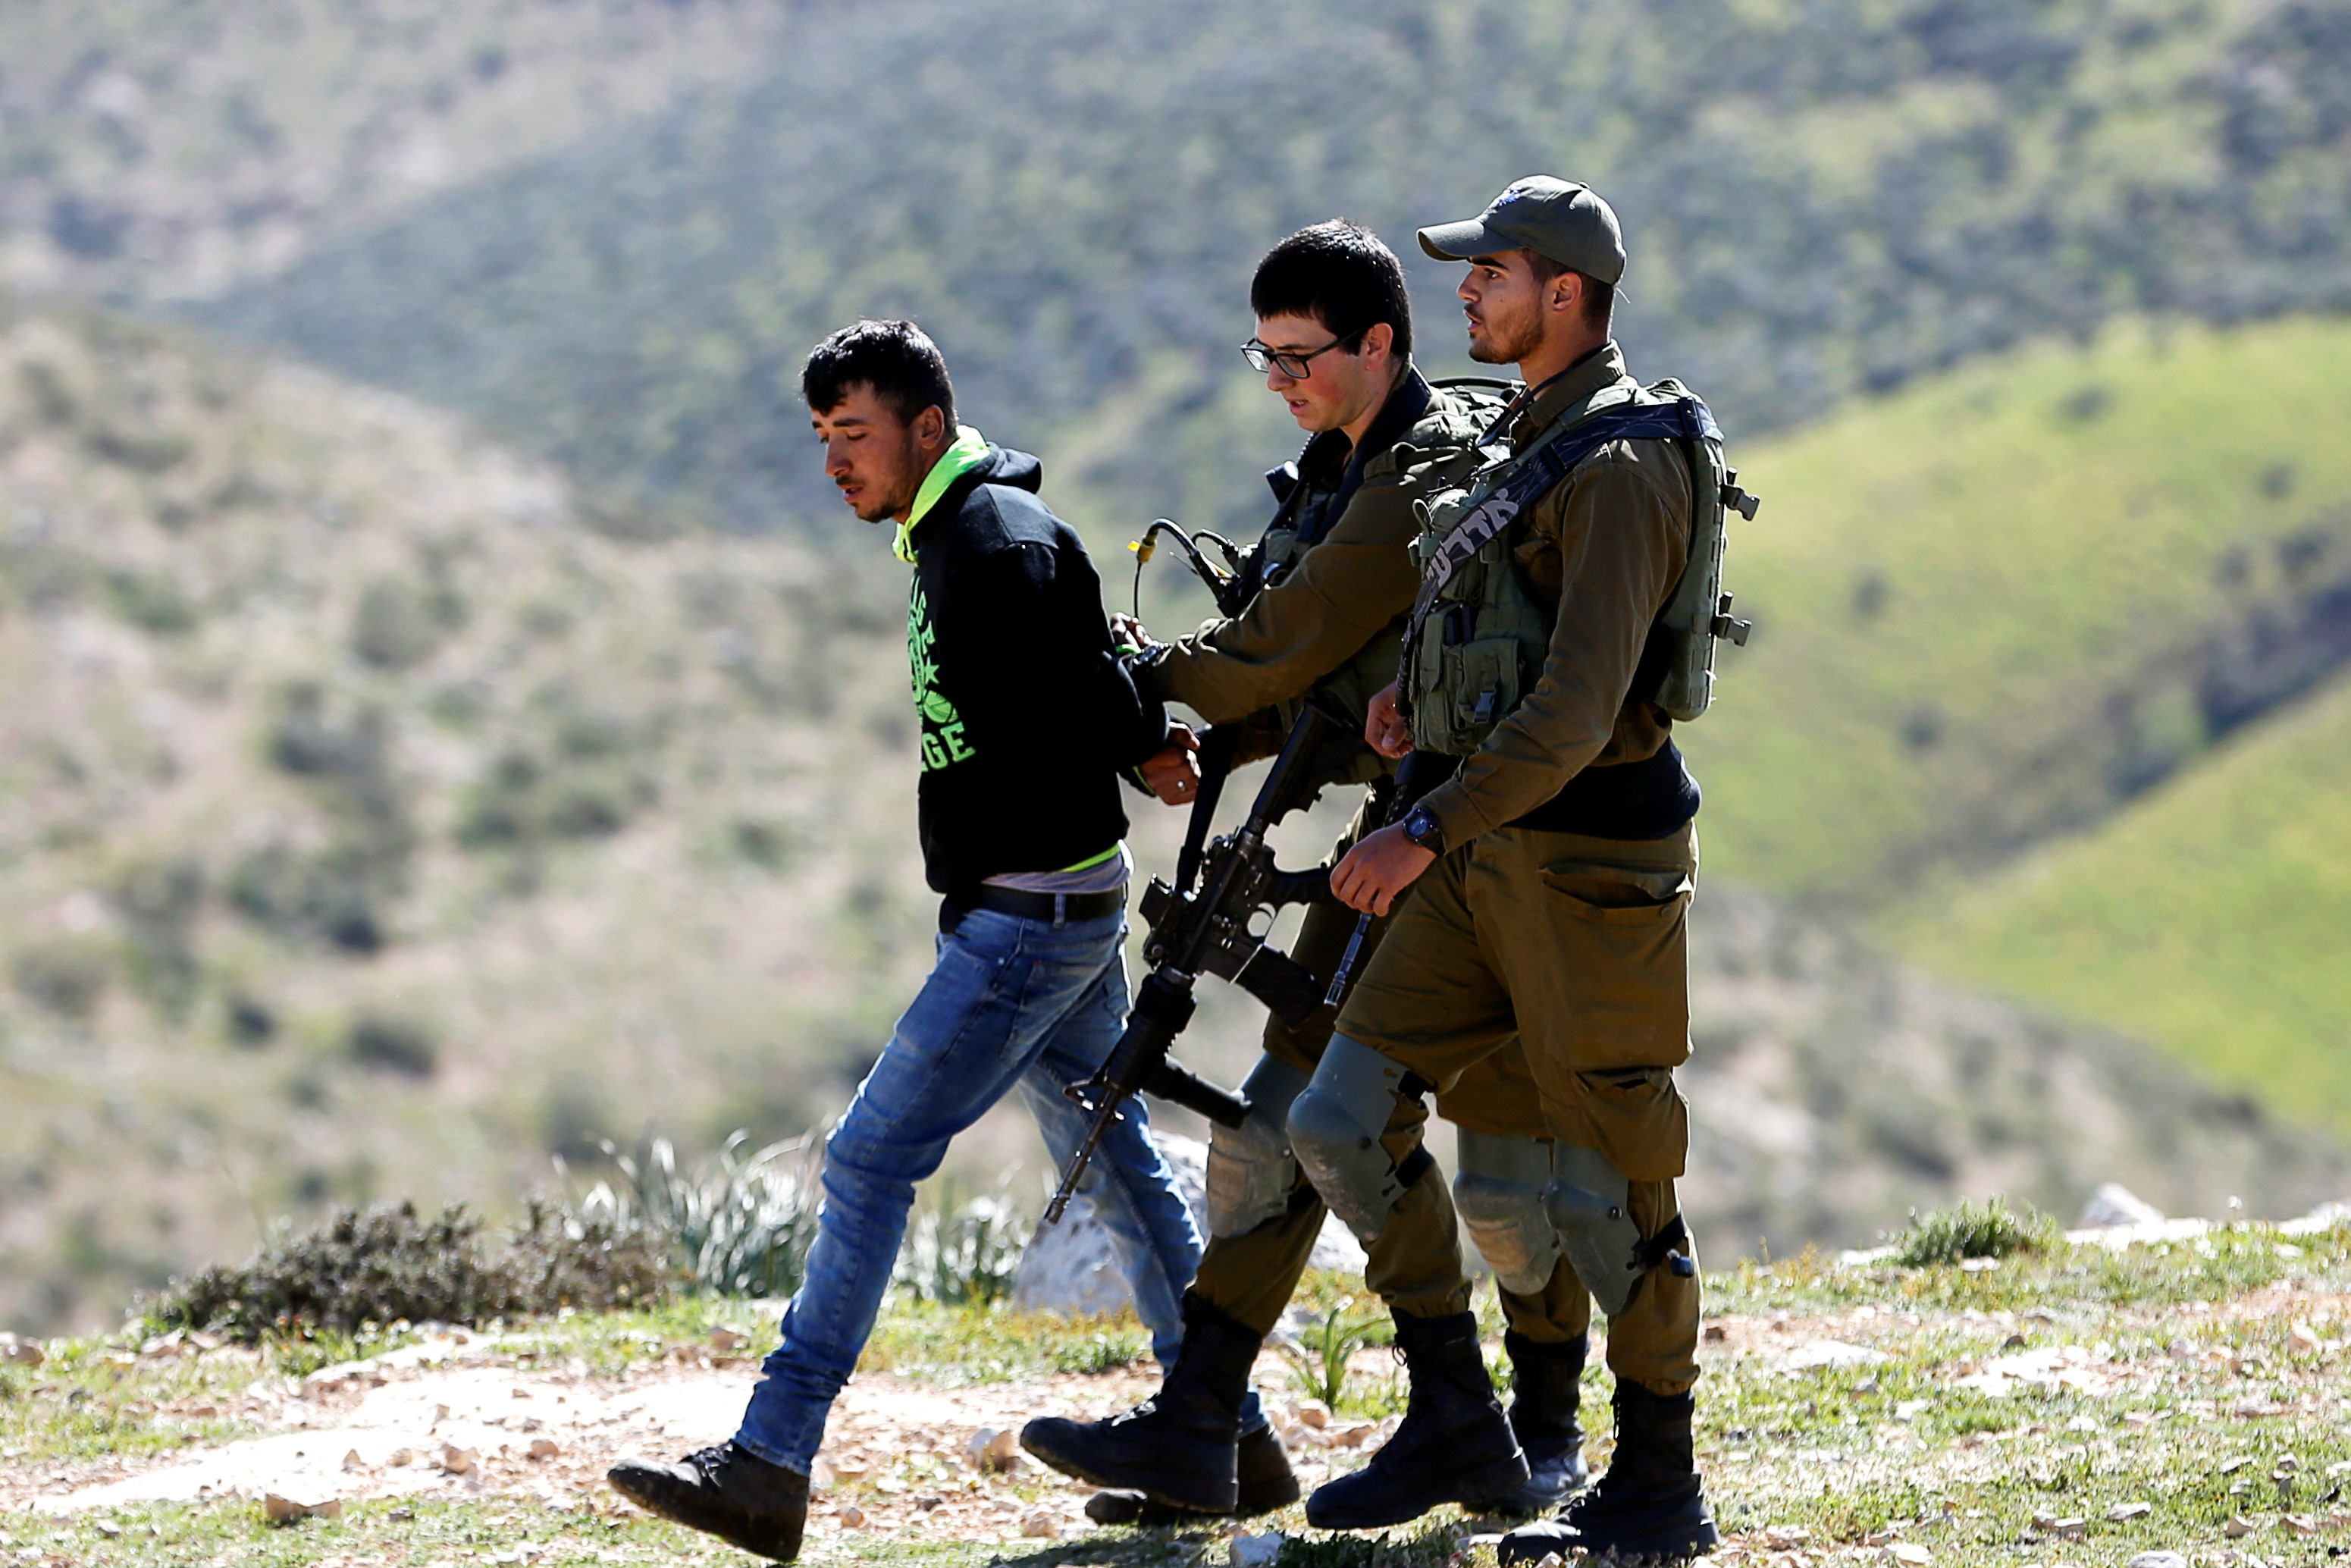 Israeli soldiers detain a Palestinian during the demolishing of his house that army told them they didn't obtain a construction license, near Yatta in the Israeli-occupied West Bank on 20 March (Reuters)